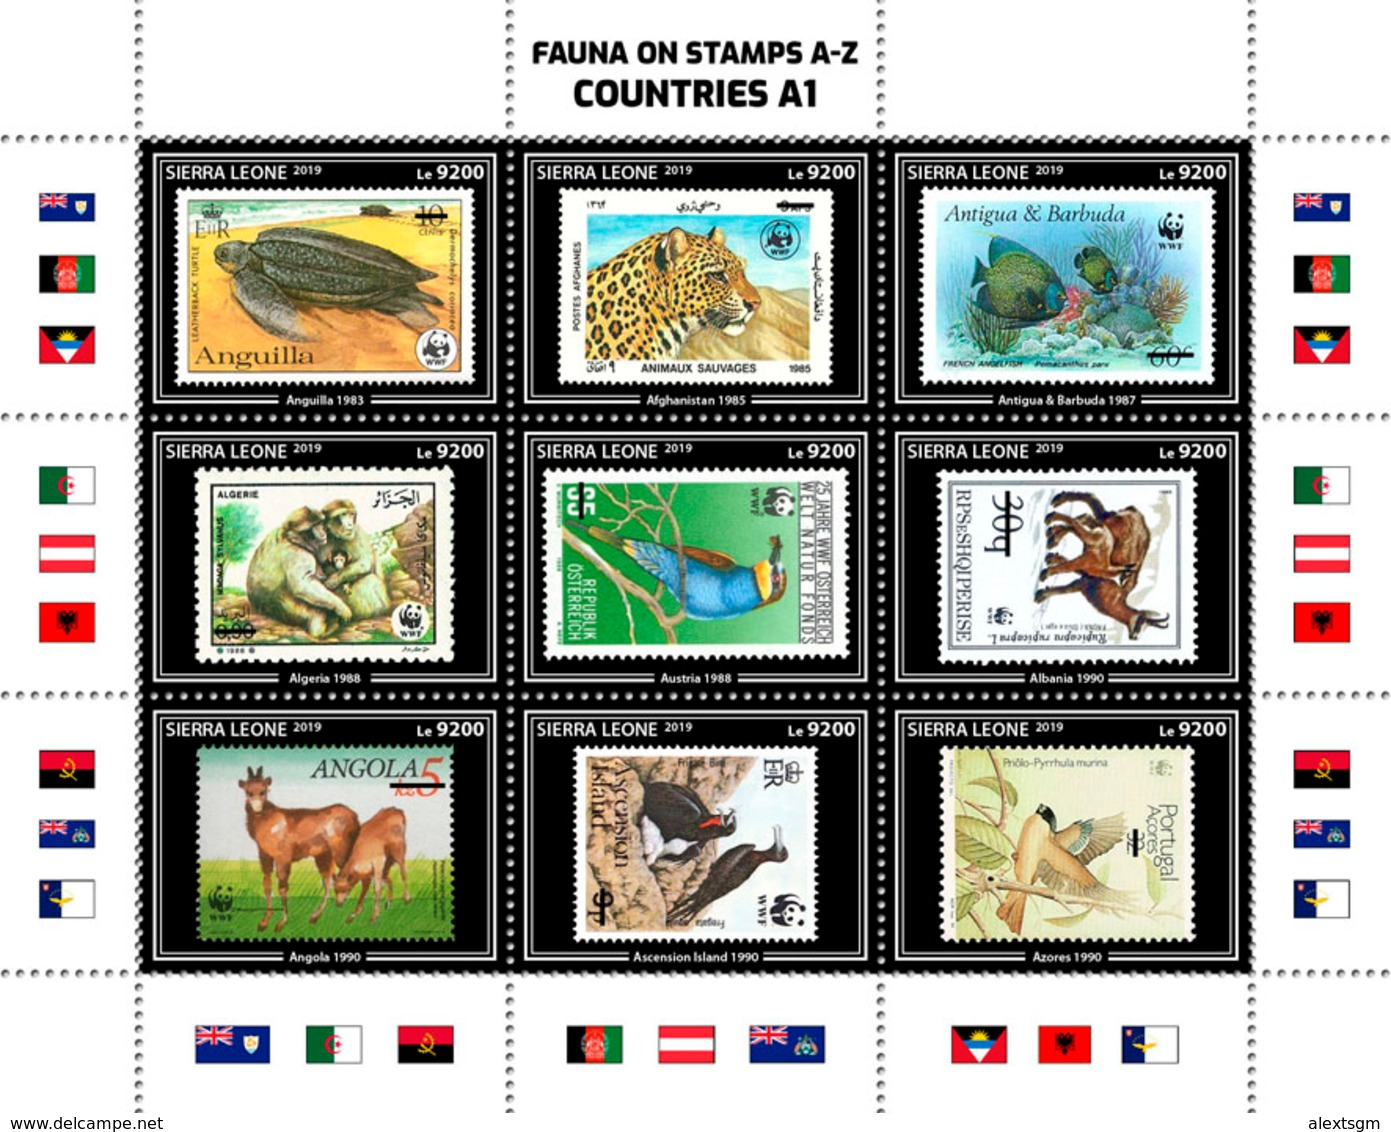 SIERRA LEONE 2019 - Marine Life, Fauna On Stamps A1. Official Issue. - Maritiem Leven